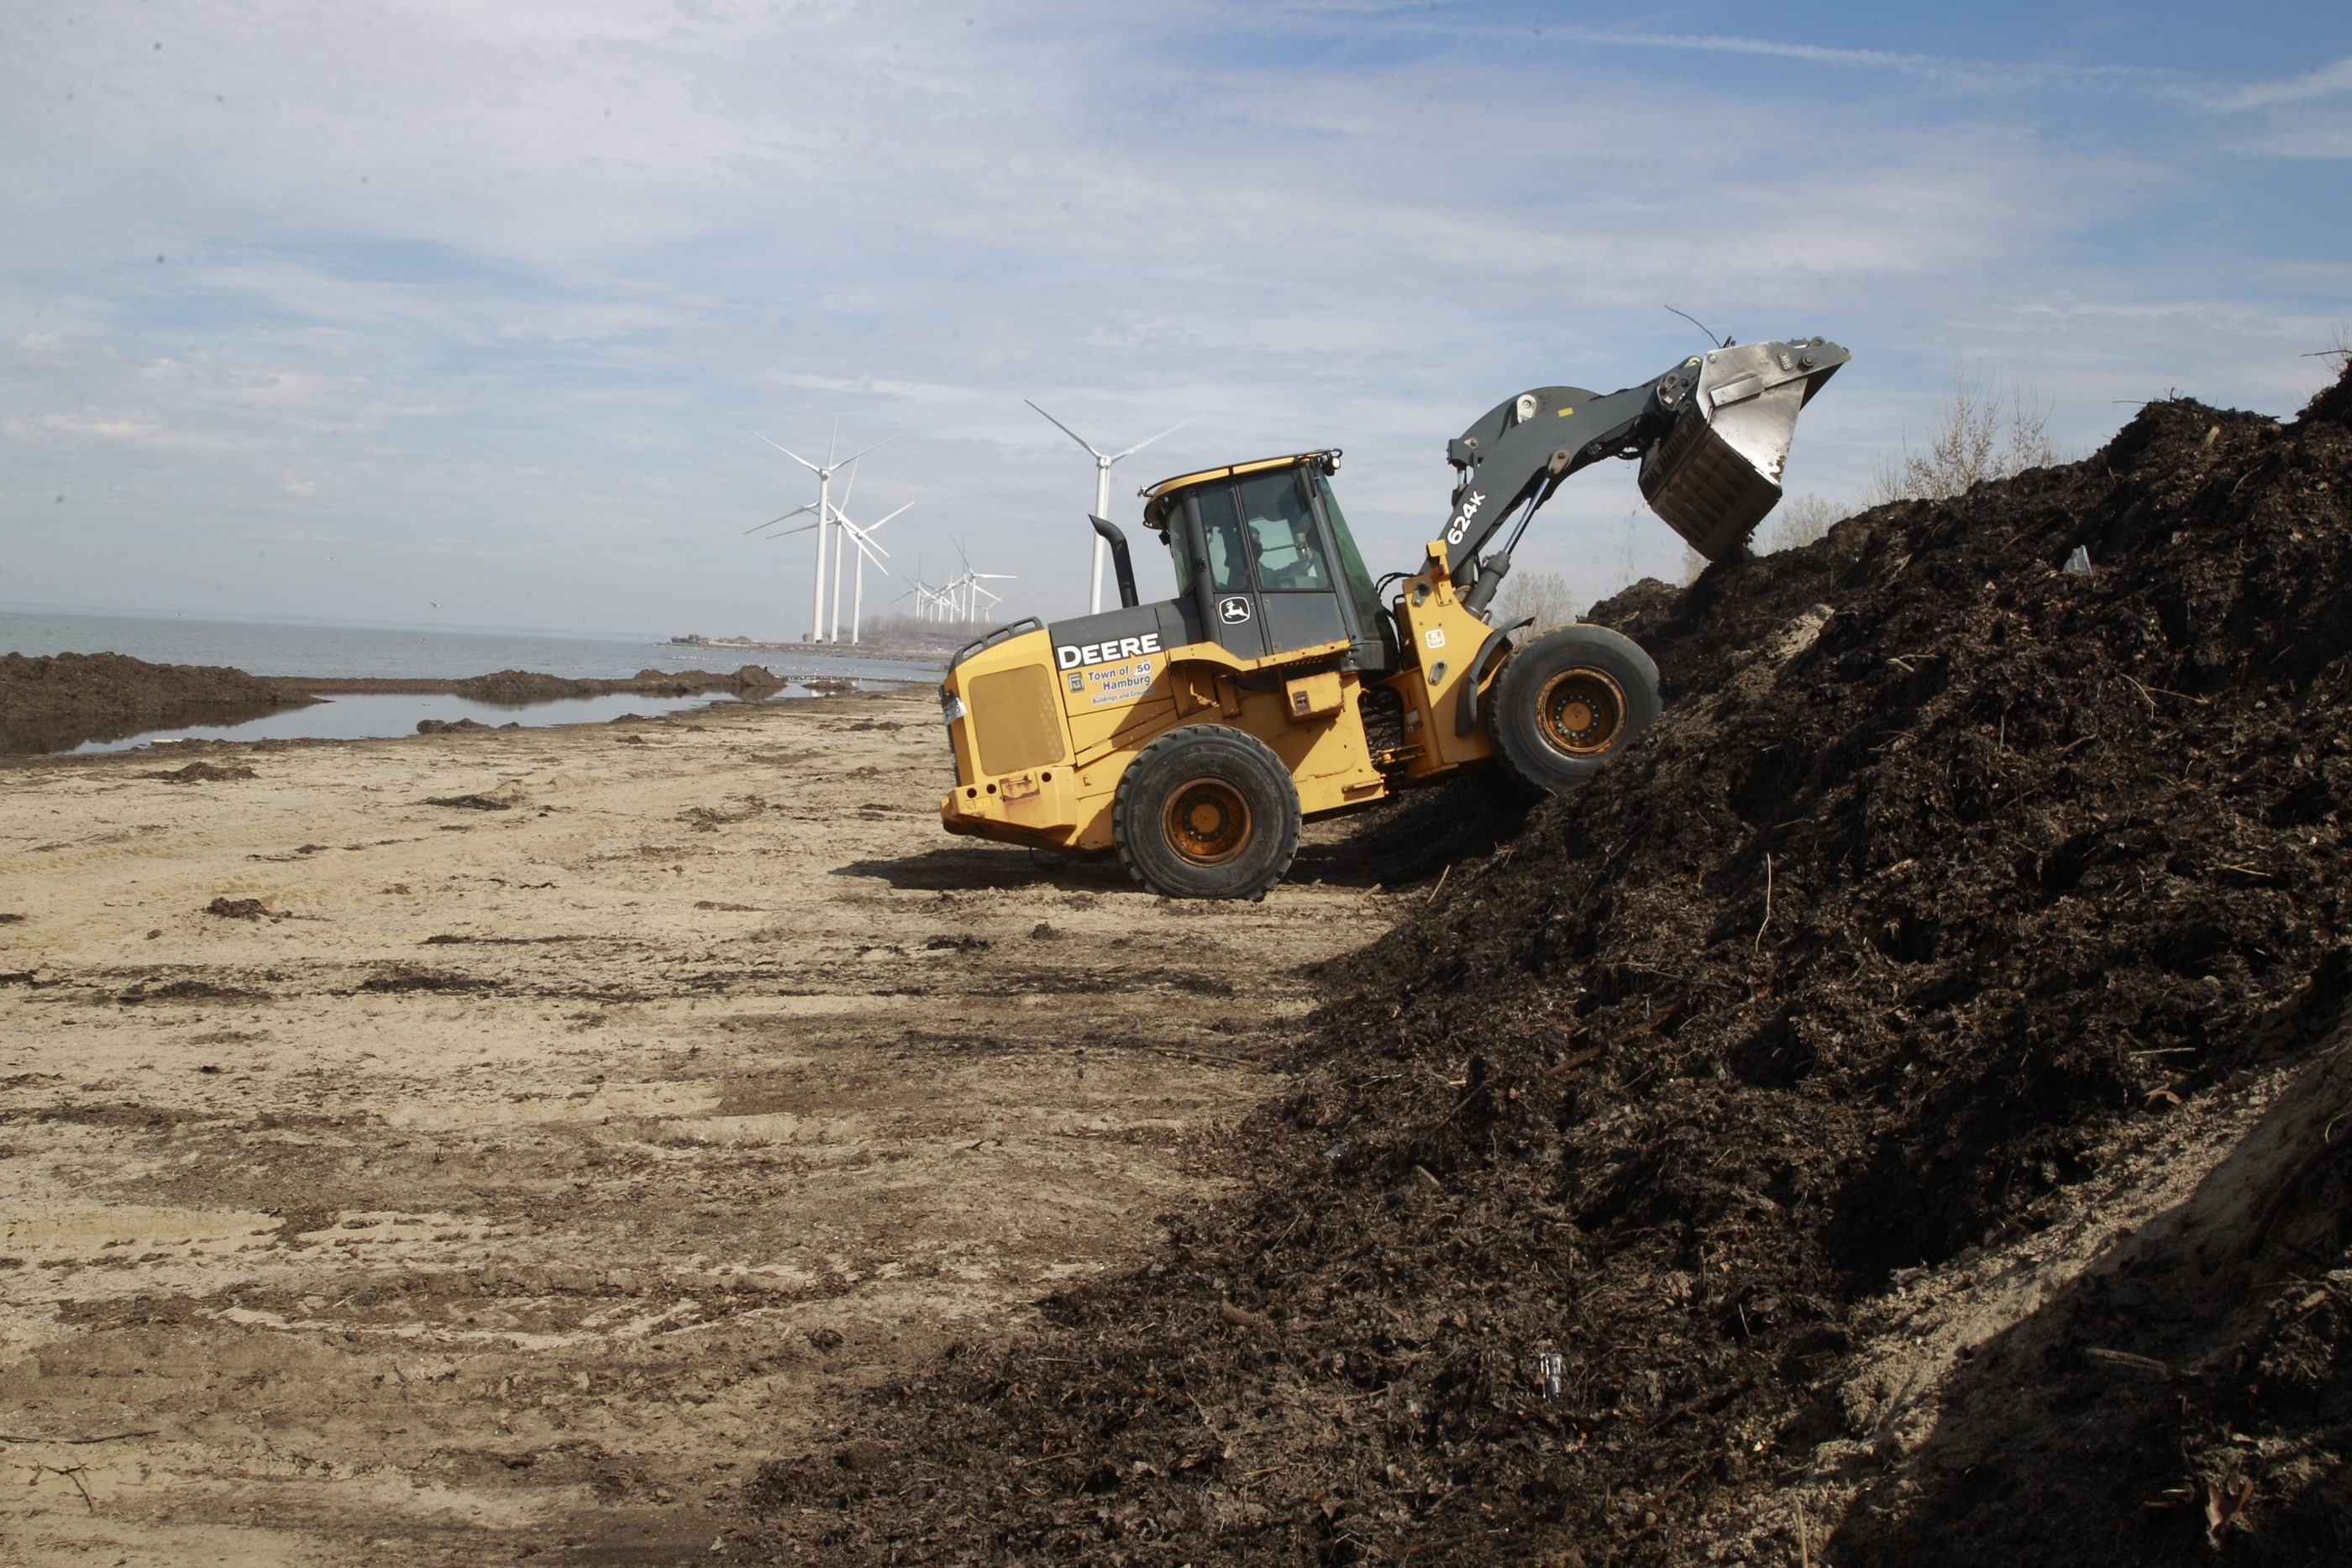 A front-end loader works on the task of cleaning Woodlawn Beach State Park which has been blocked off to vehicle traffic, due to the large amount of debris on the beach. (John Hickey/Buffalo News)